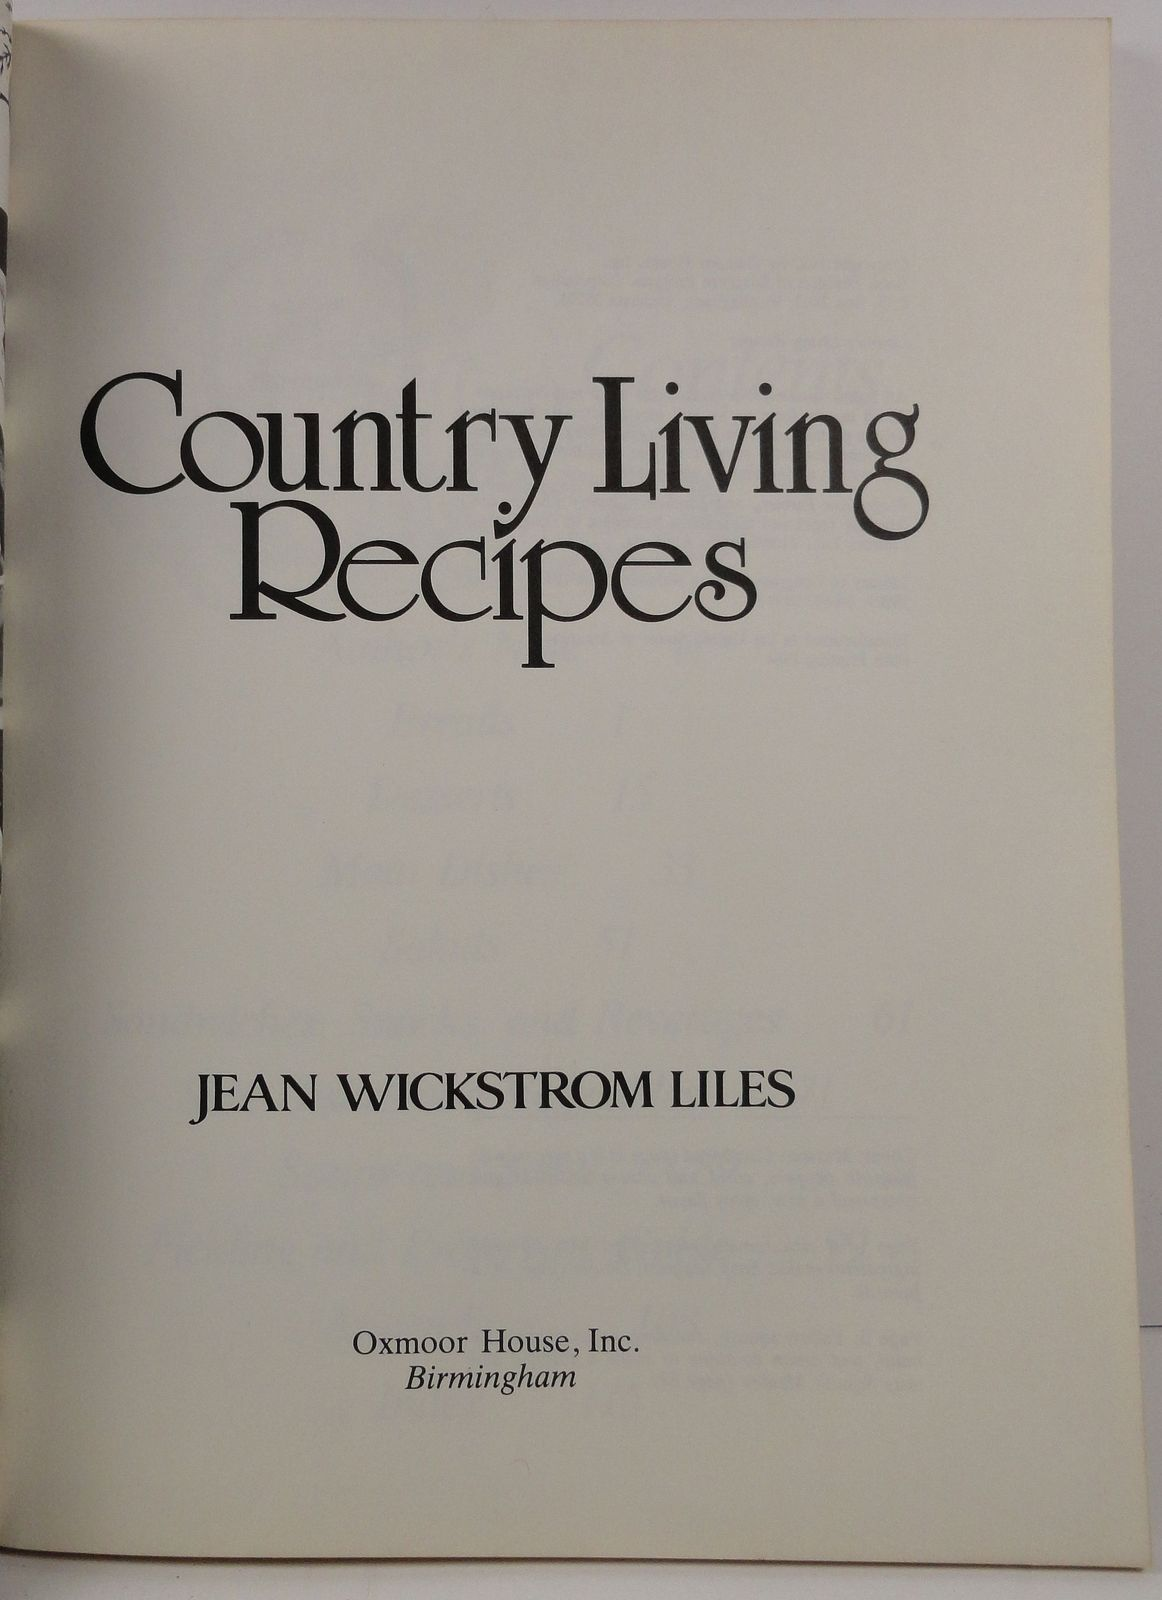 Country Living Recipes by Jean Wickstrom Liles